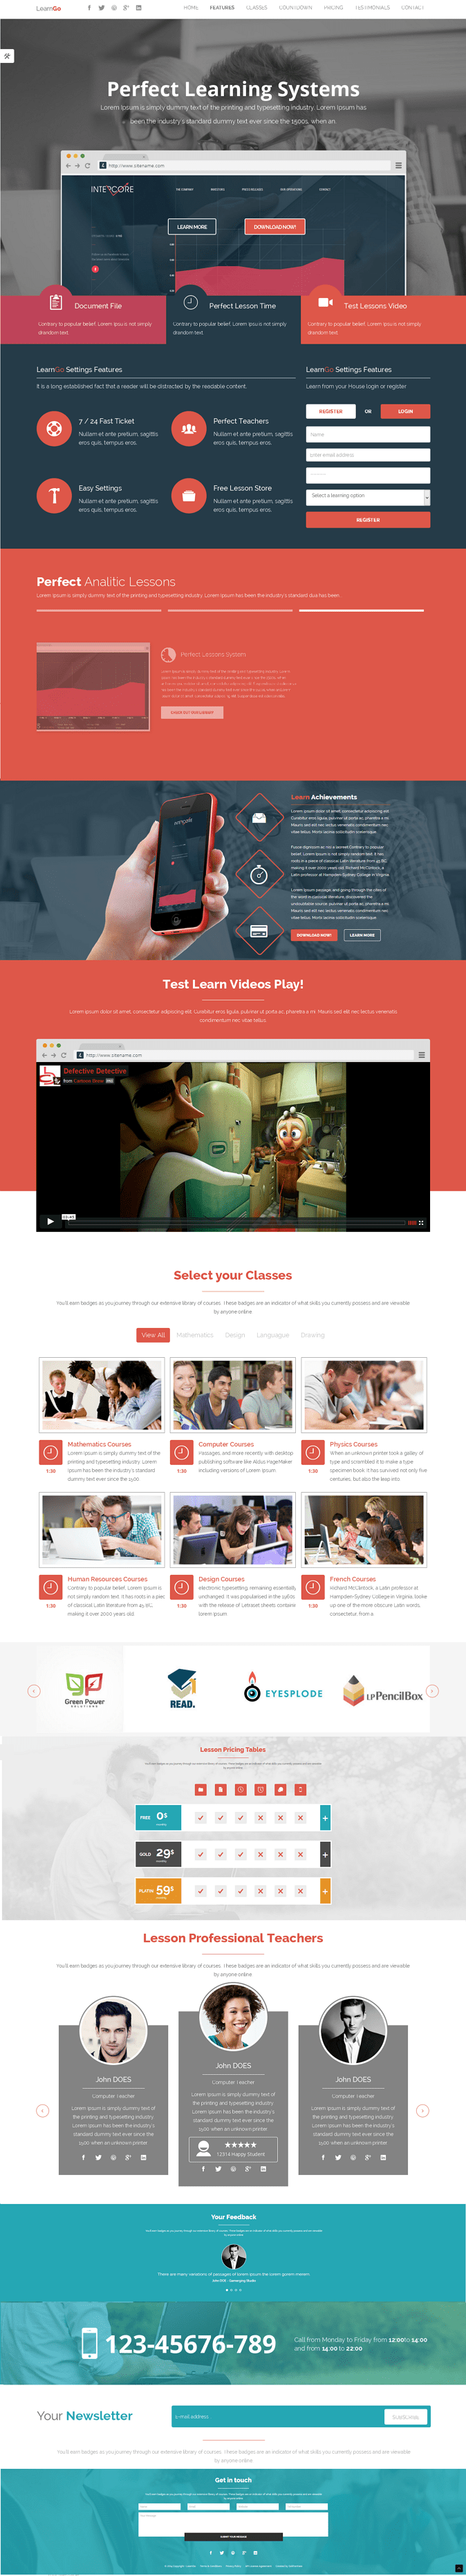 Badeinrichtung Software Learngo Is A One Page Education Learning Html Landing Page